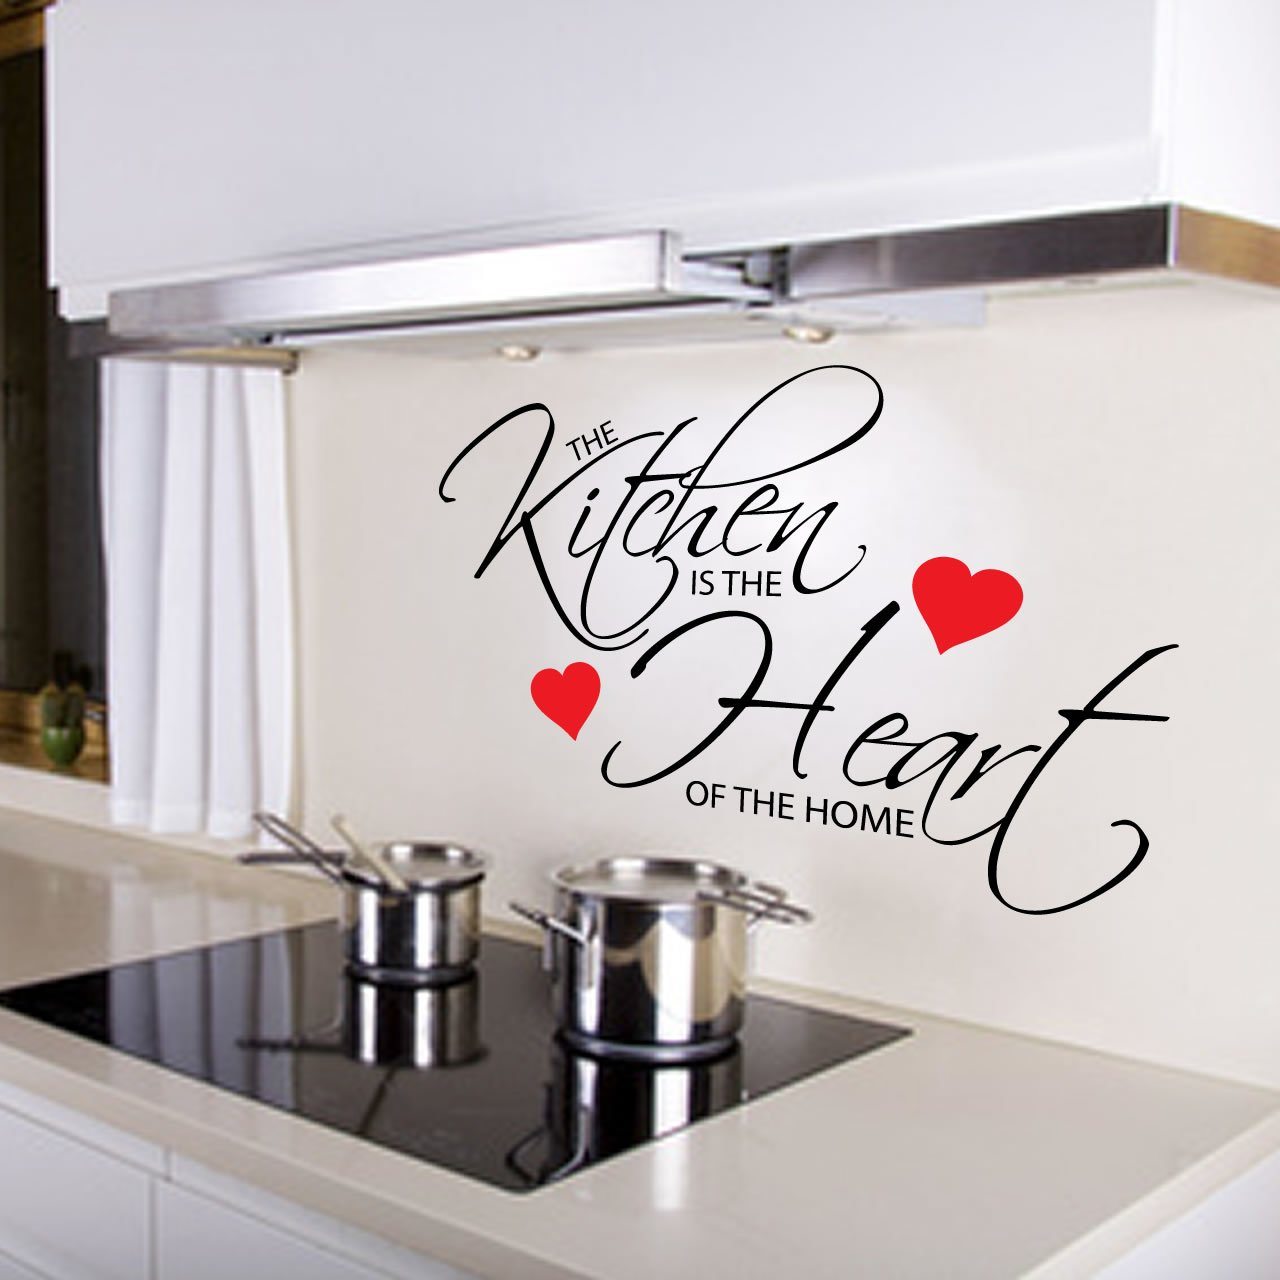 Quotes For The Kitchen: Kitchen Is The Heart Of The Home Quote Wall Sticker